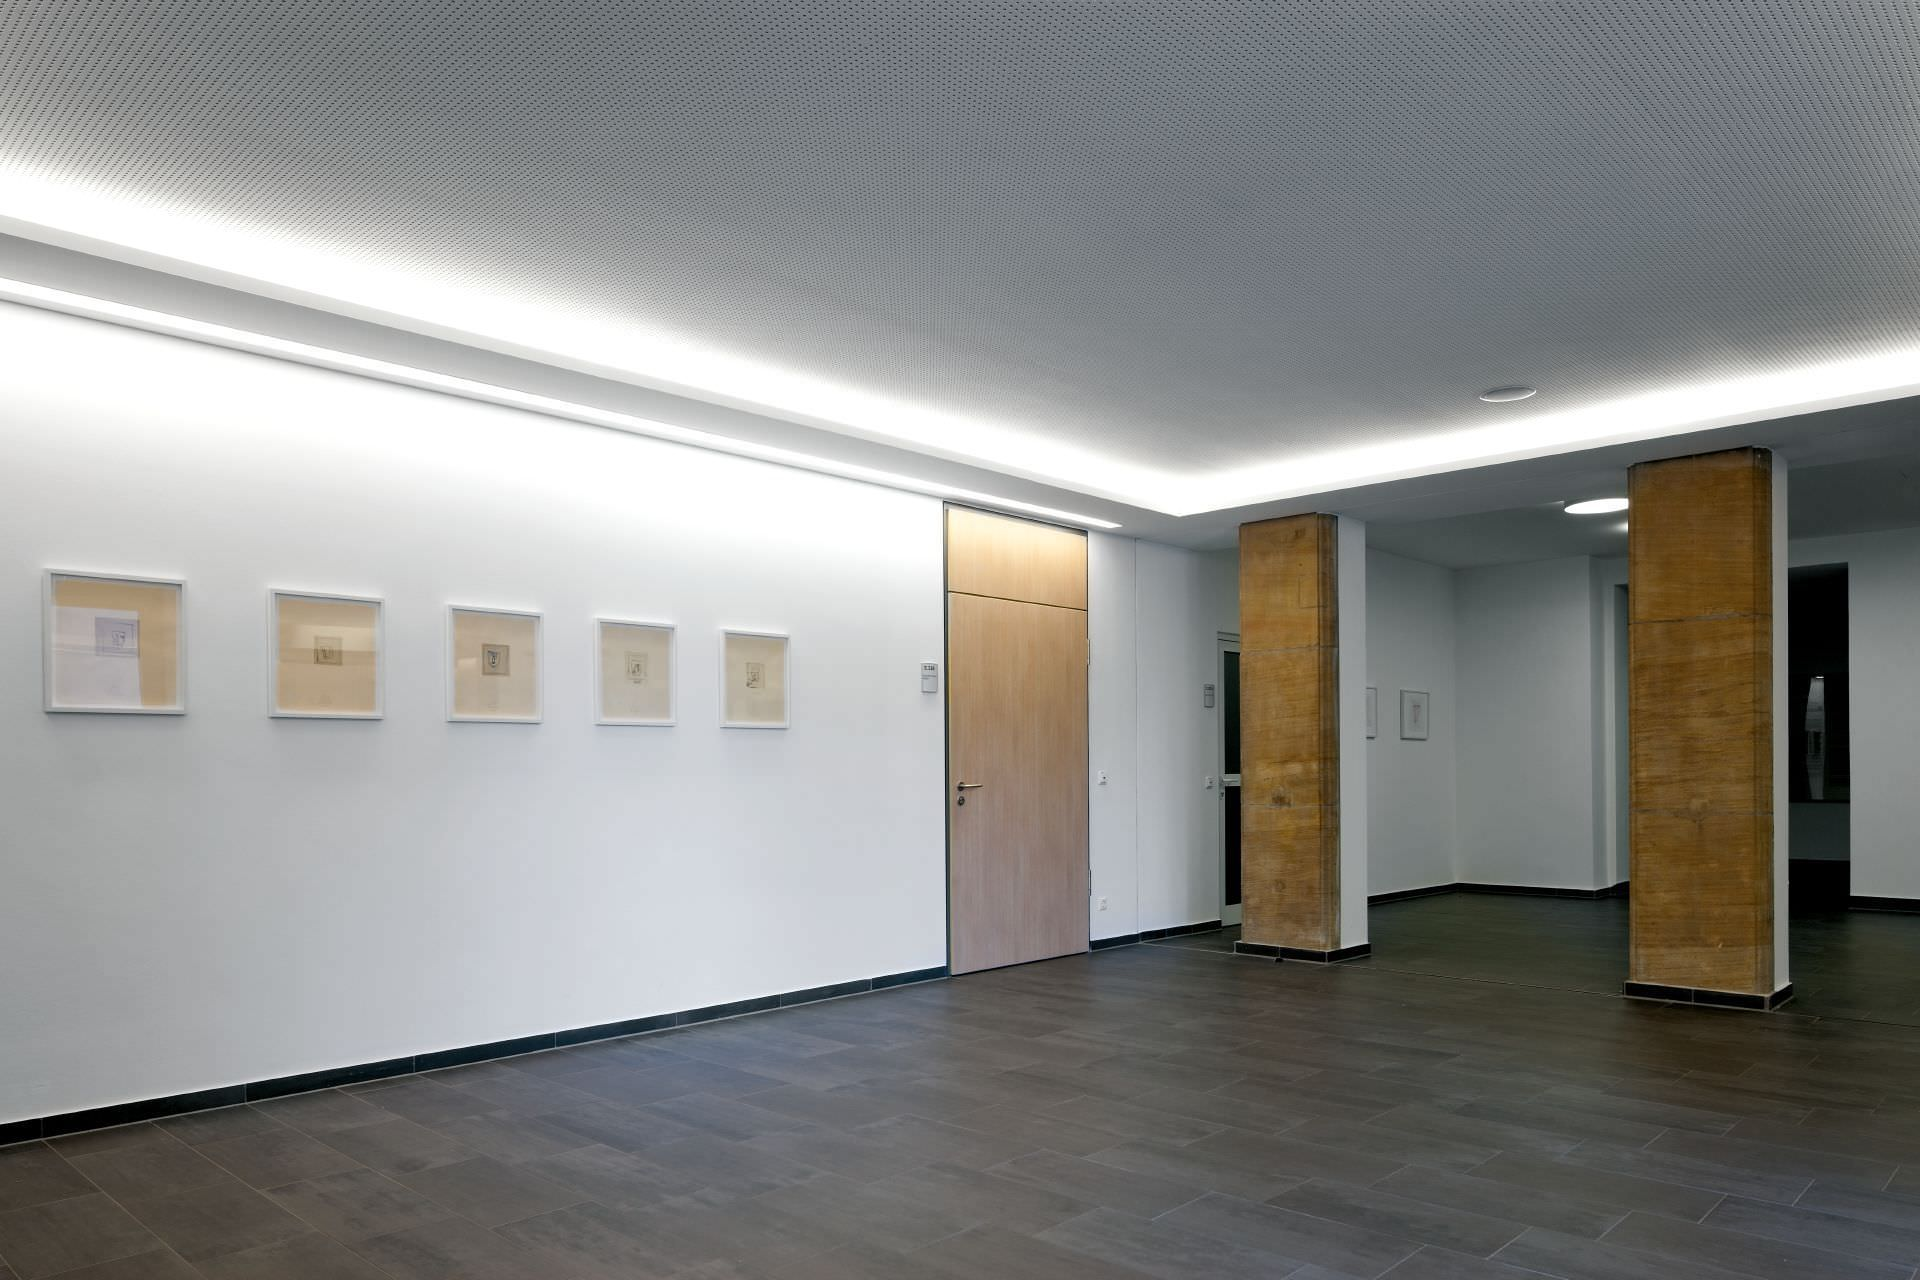 recessed ceiling ideas - Ceiling lights recessed Perfection with Efficiency